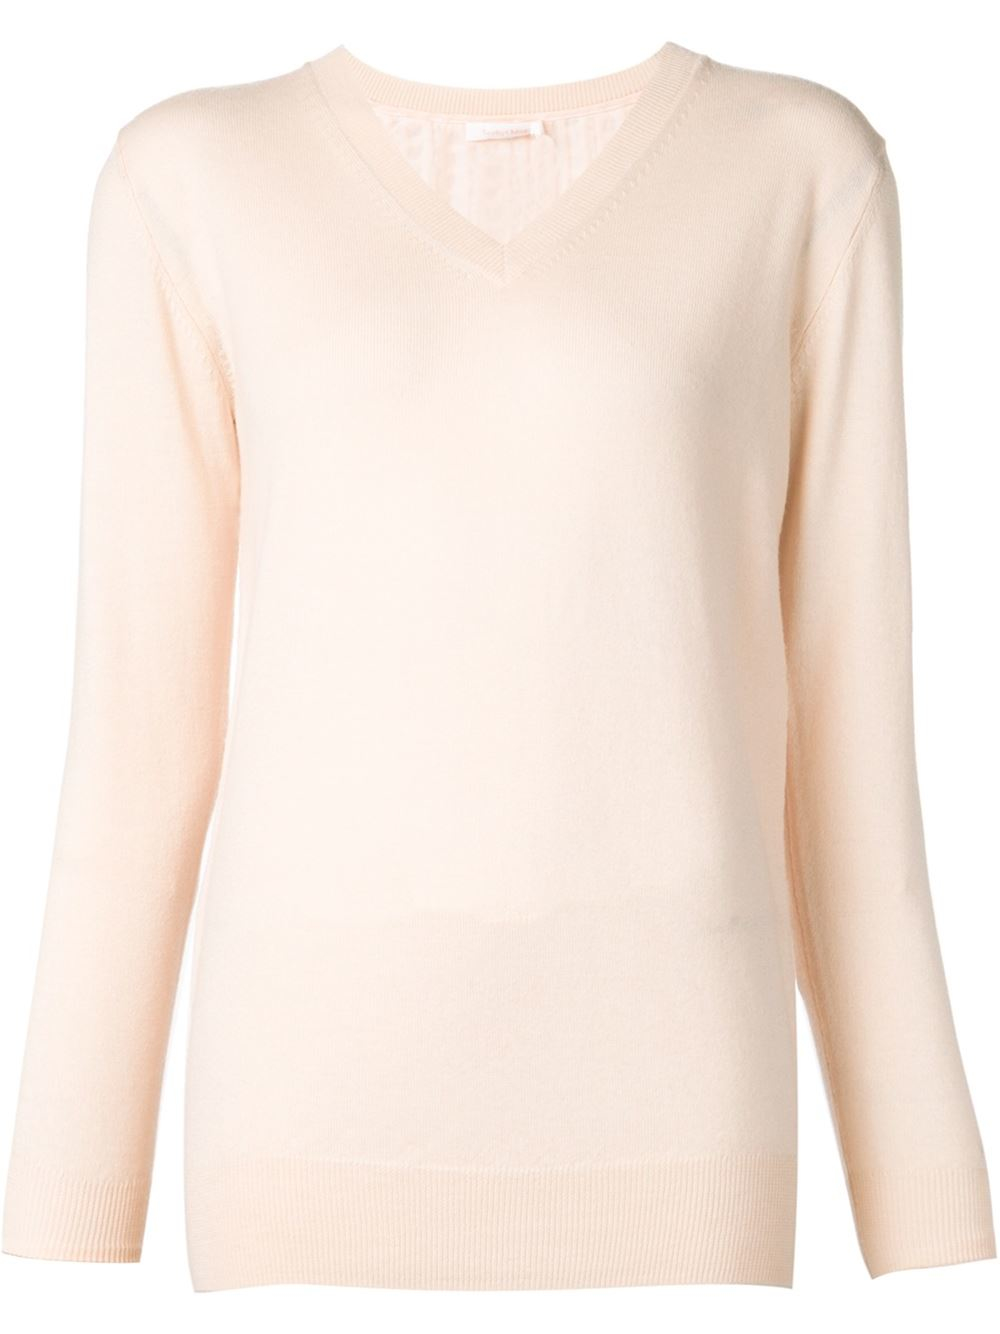 See by chloé Lace Back Sweater in Pink | Lyst